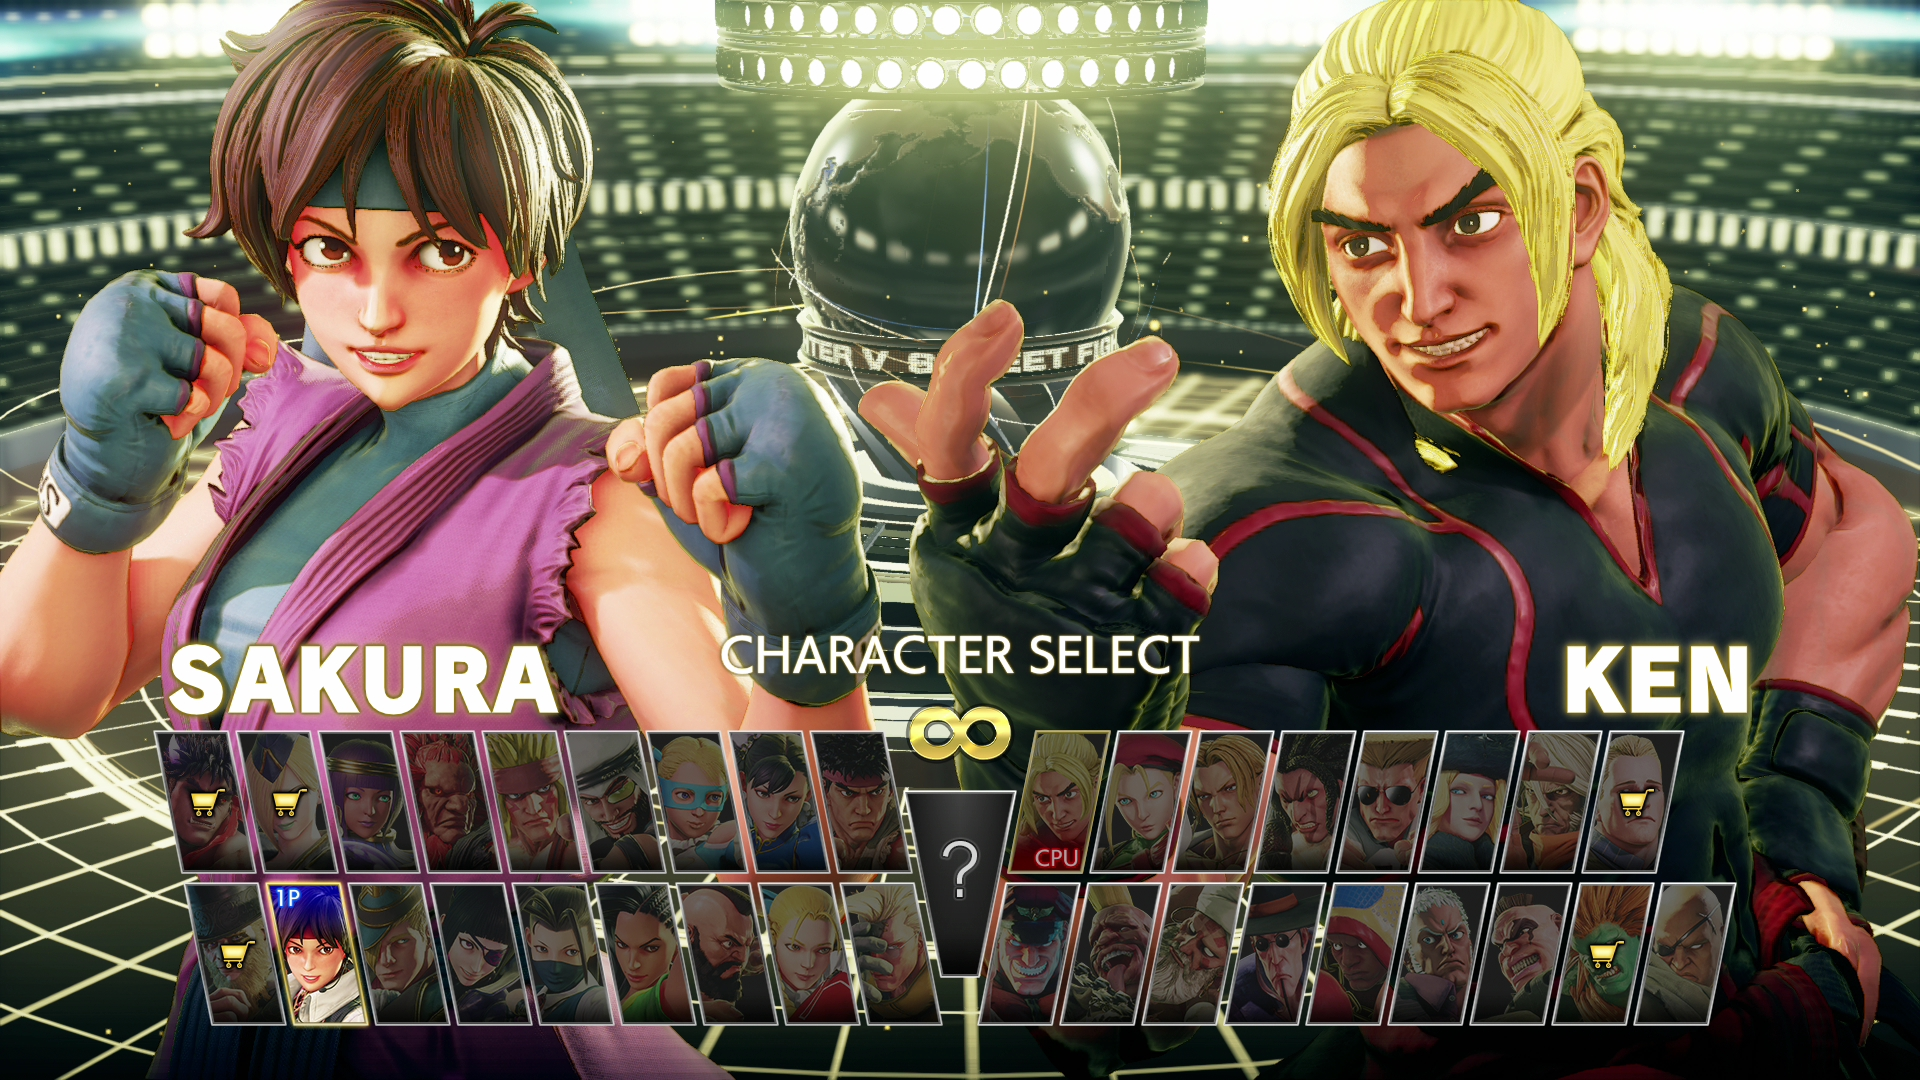 Characters in Fighting Games - 1